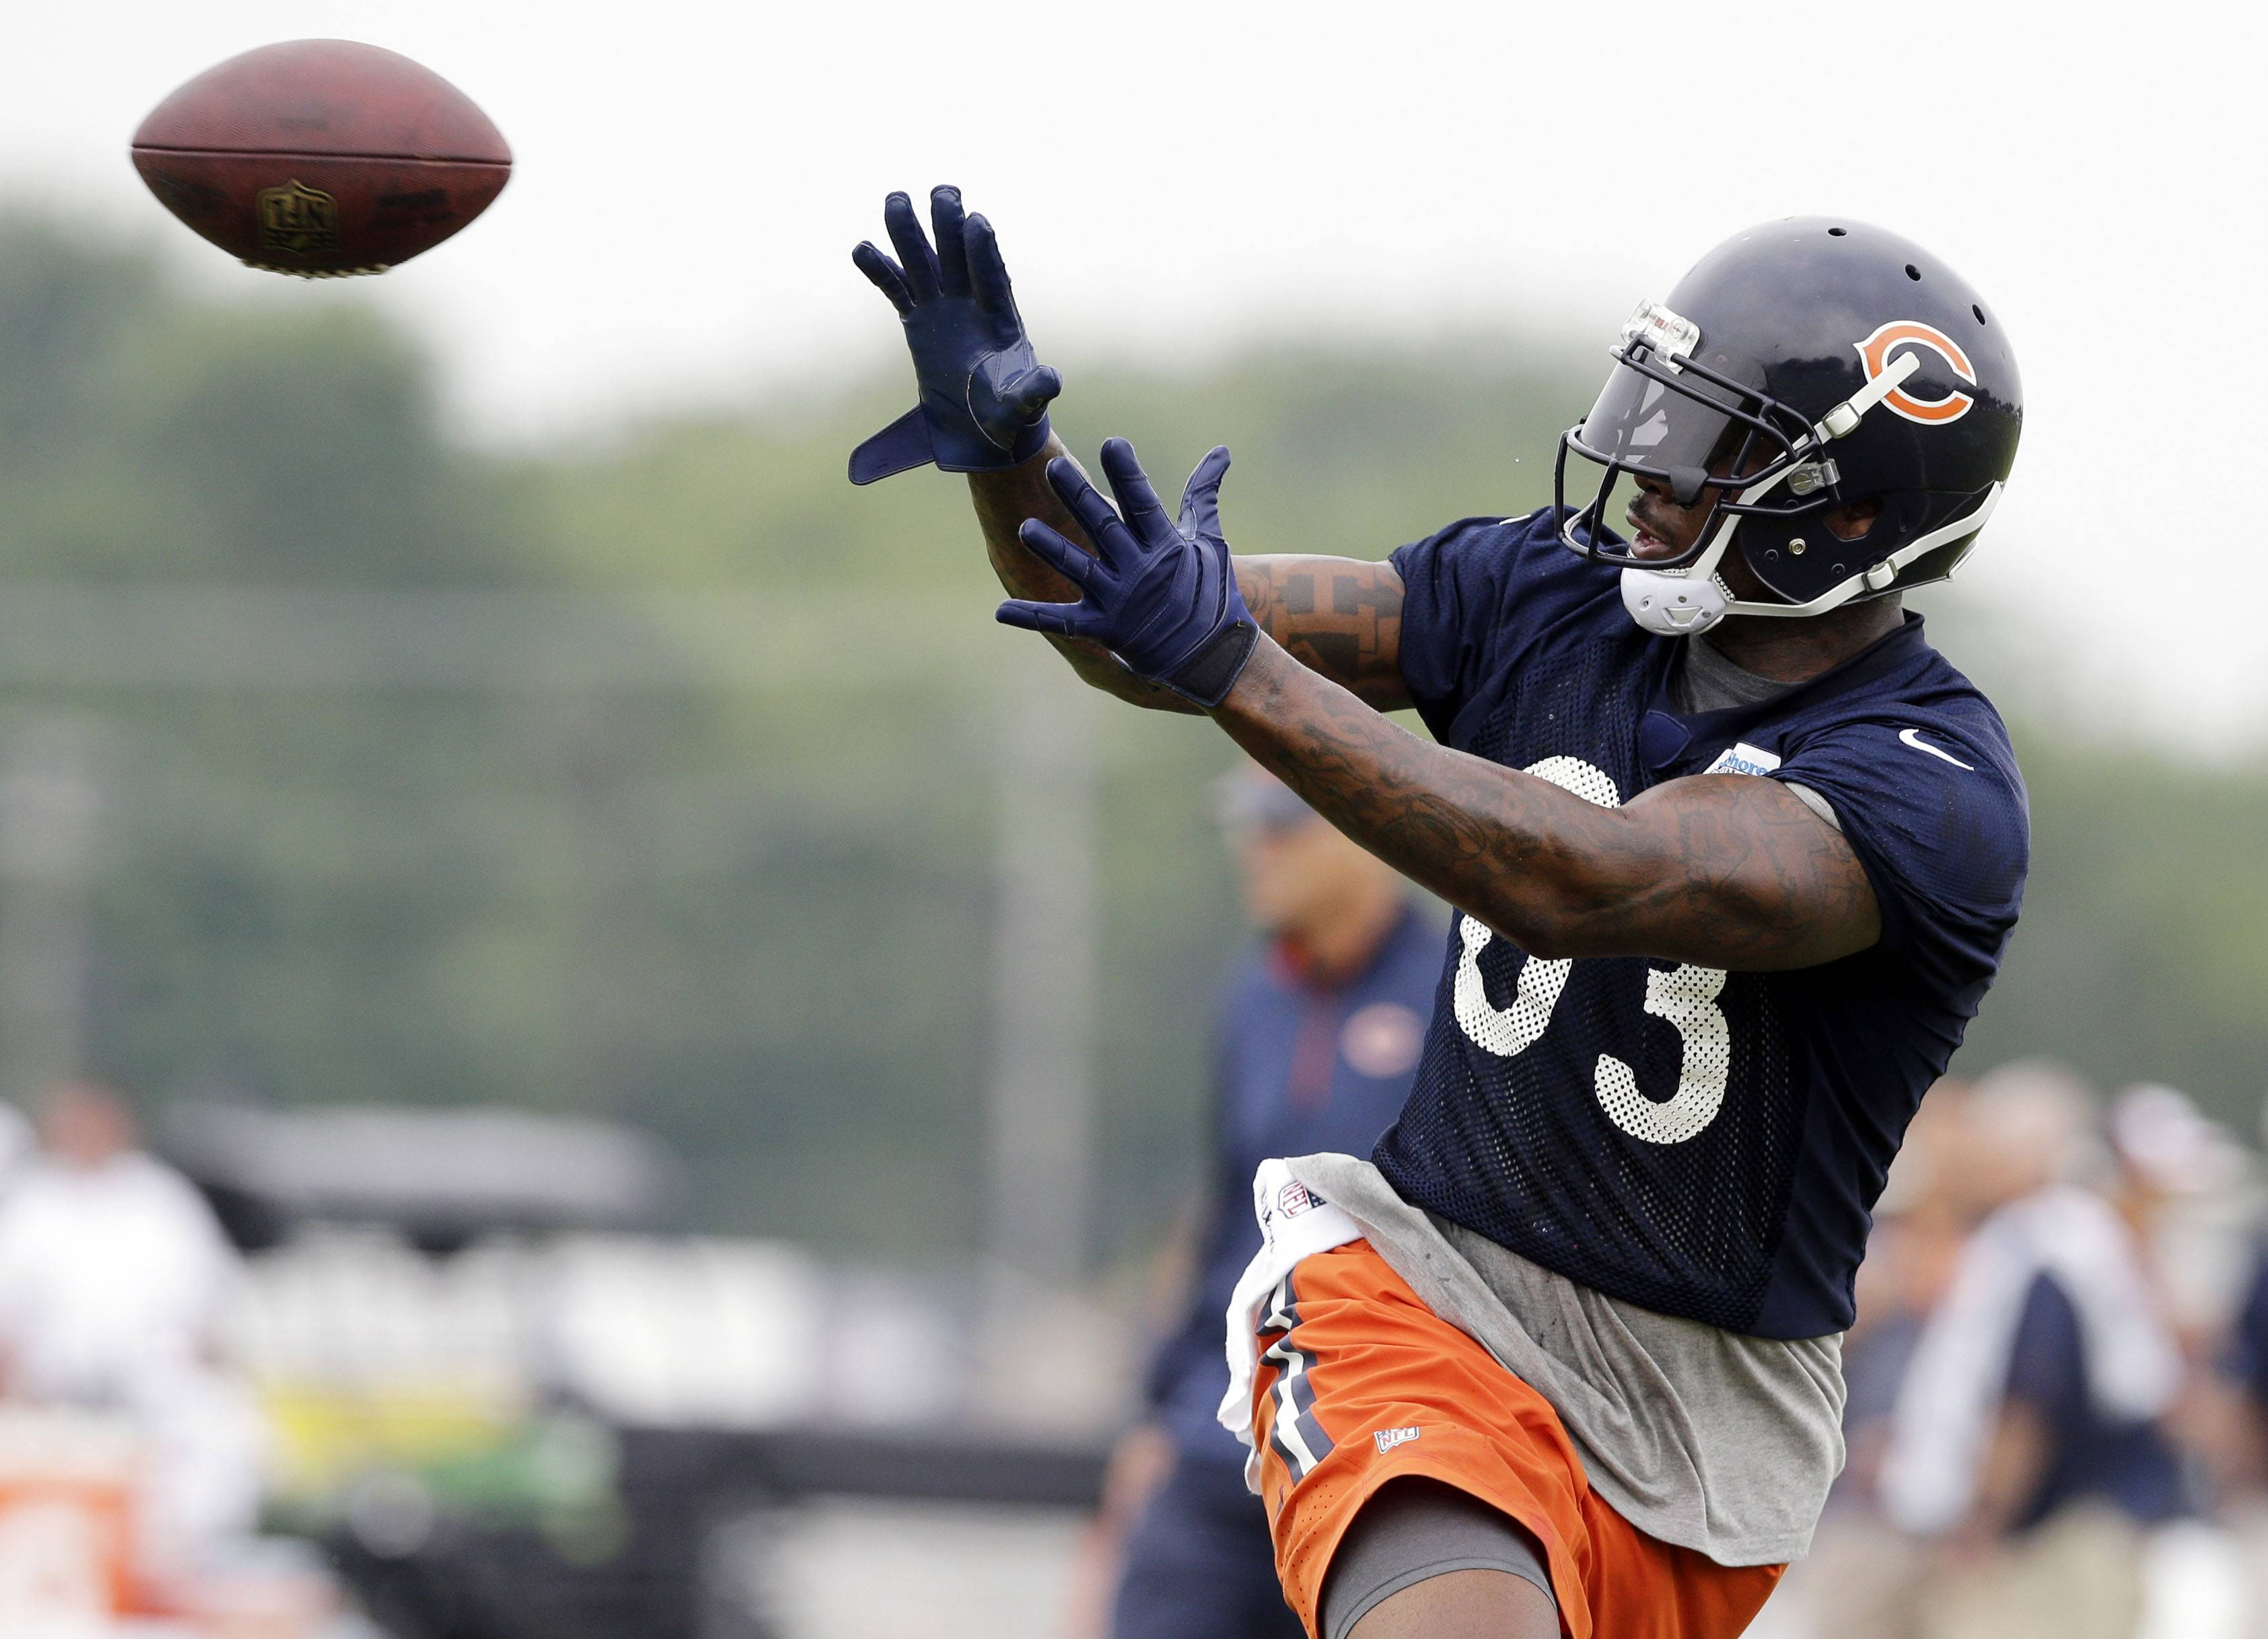 Bears want to see more control from Bennett